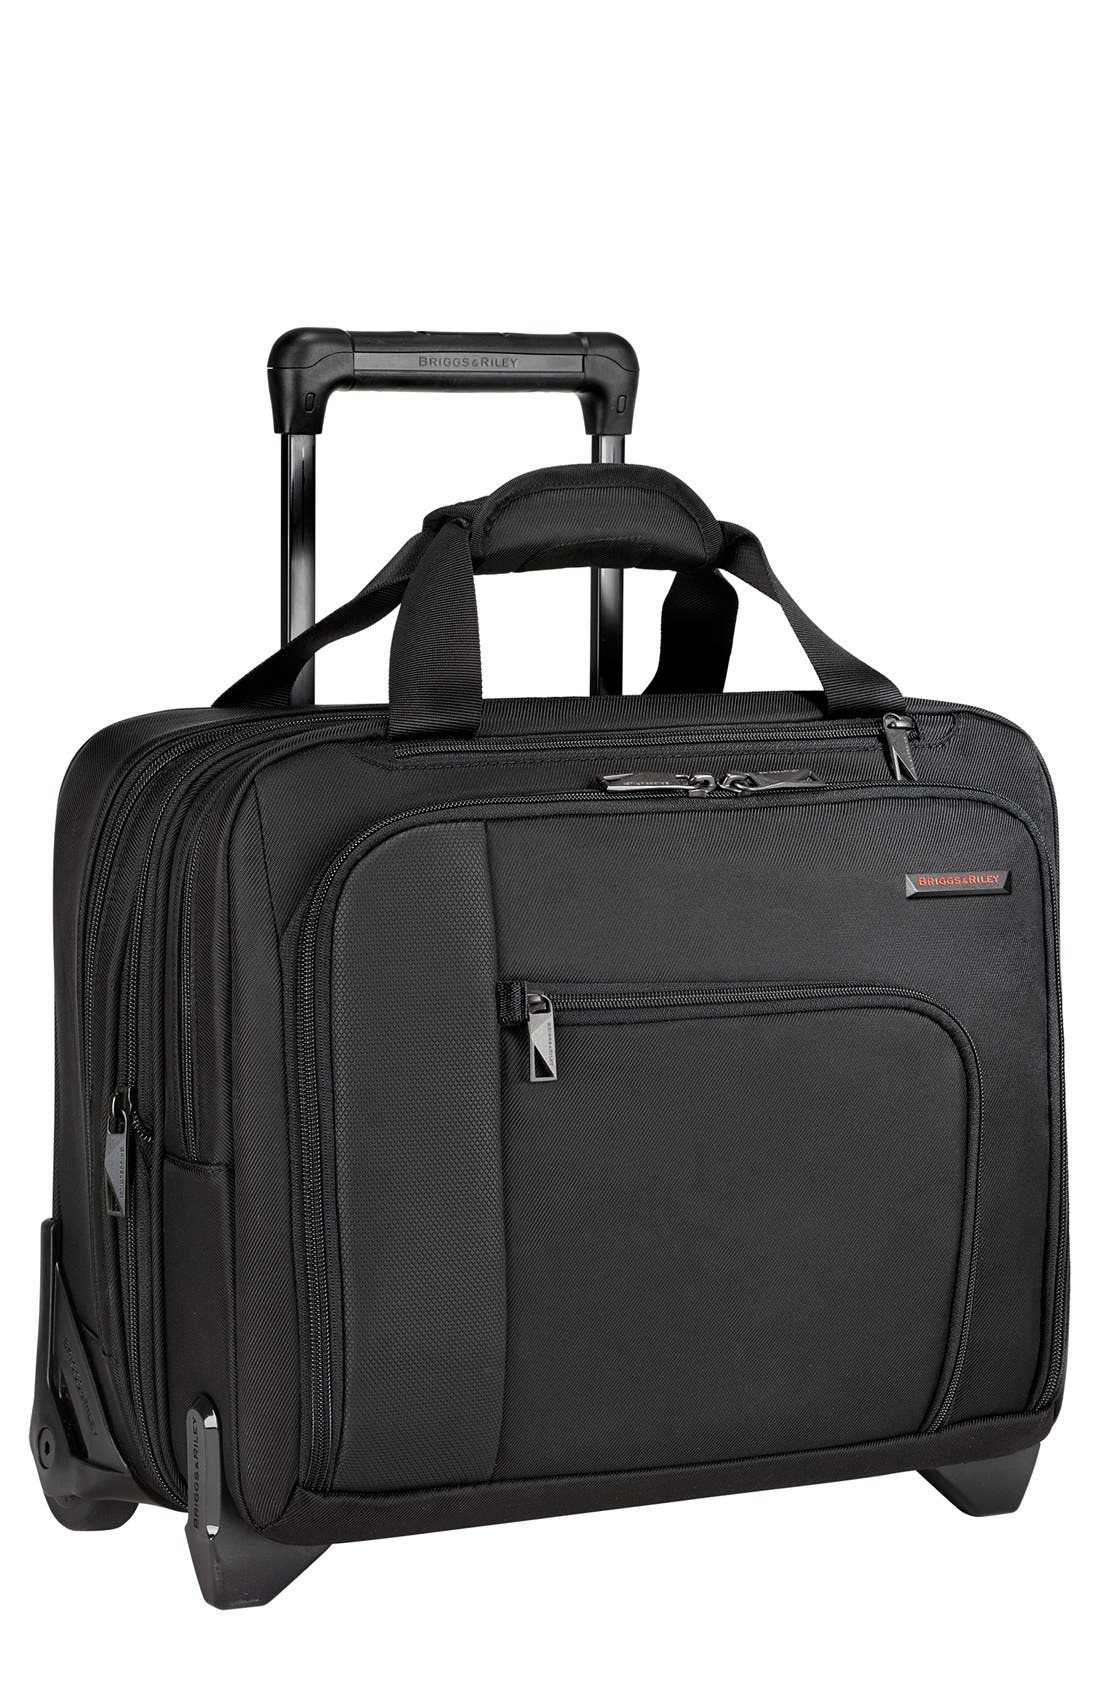 California Luggage has a huge selection of luggage, travel accessories, briefcases, messenger bags and computer cases. We're your complete travel store.